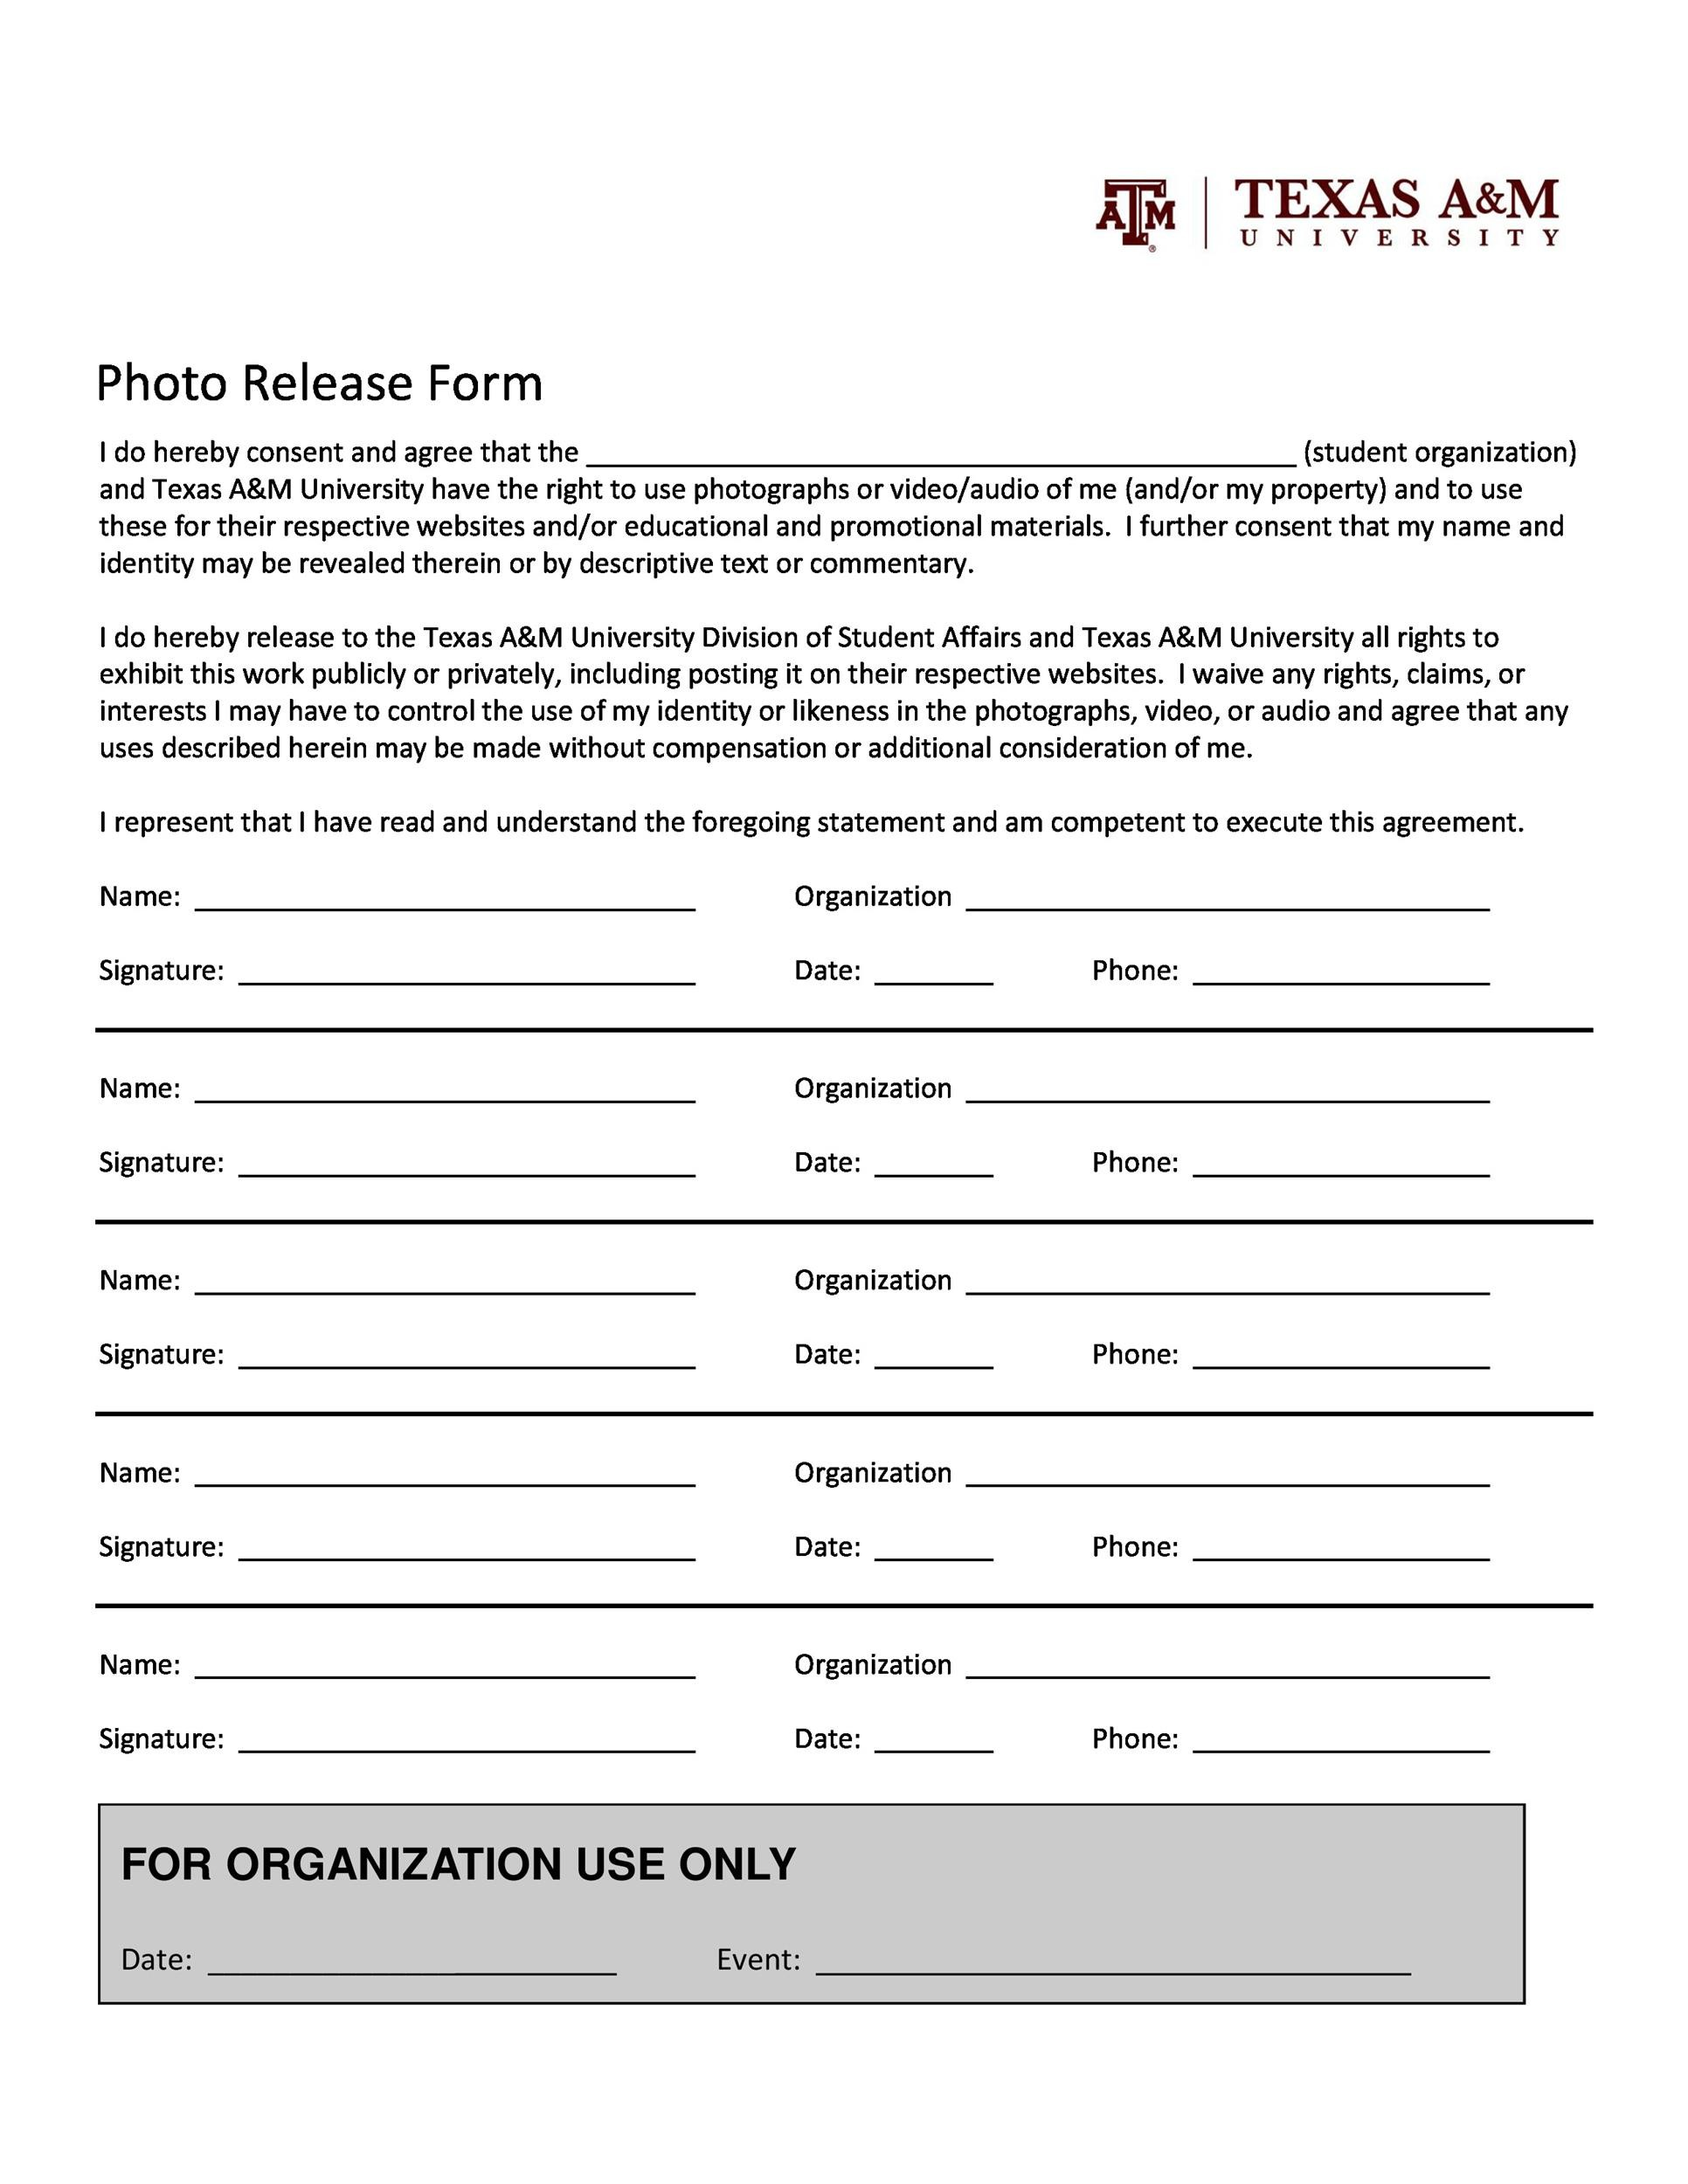 53 Free Photo Release Form Templates Word Pdf Template Lab